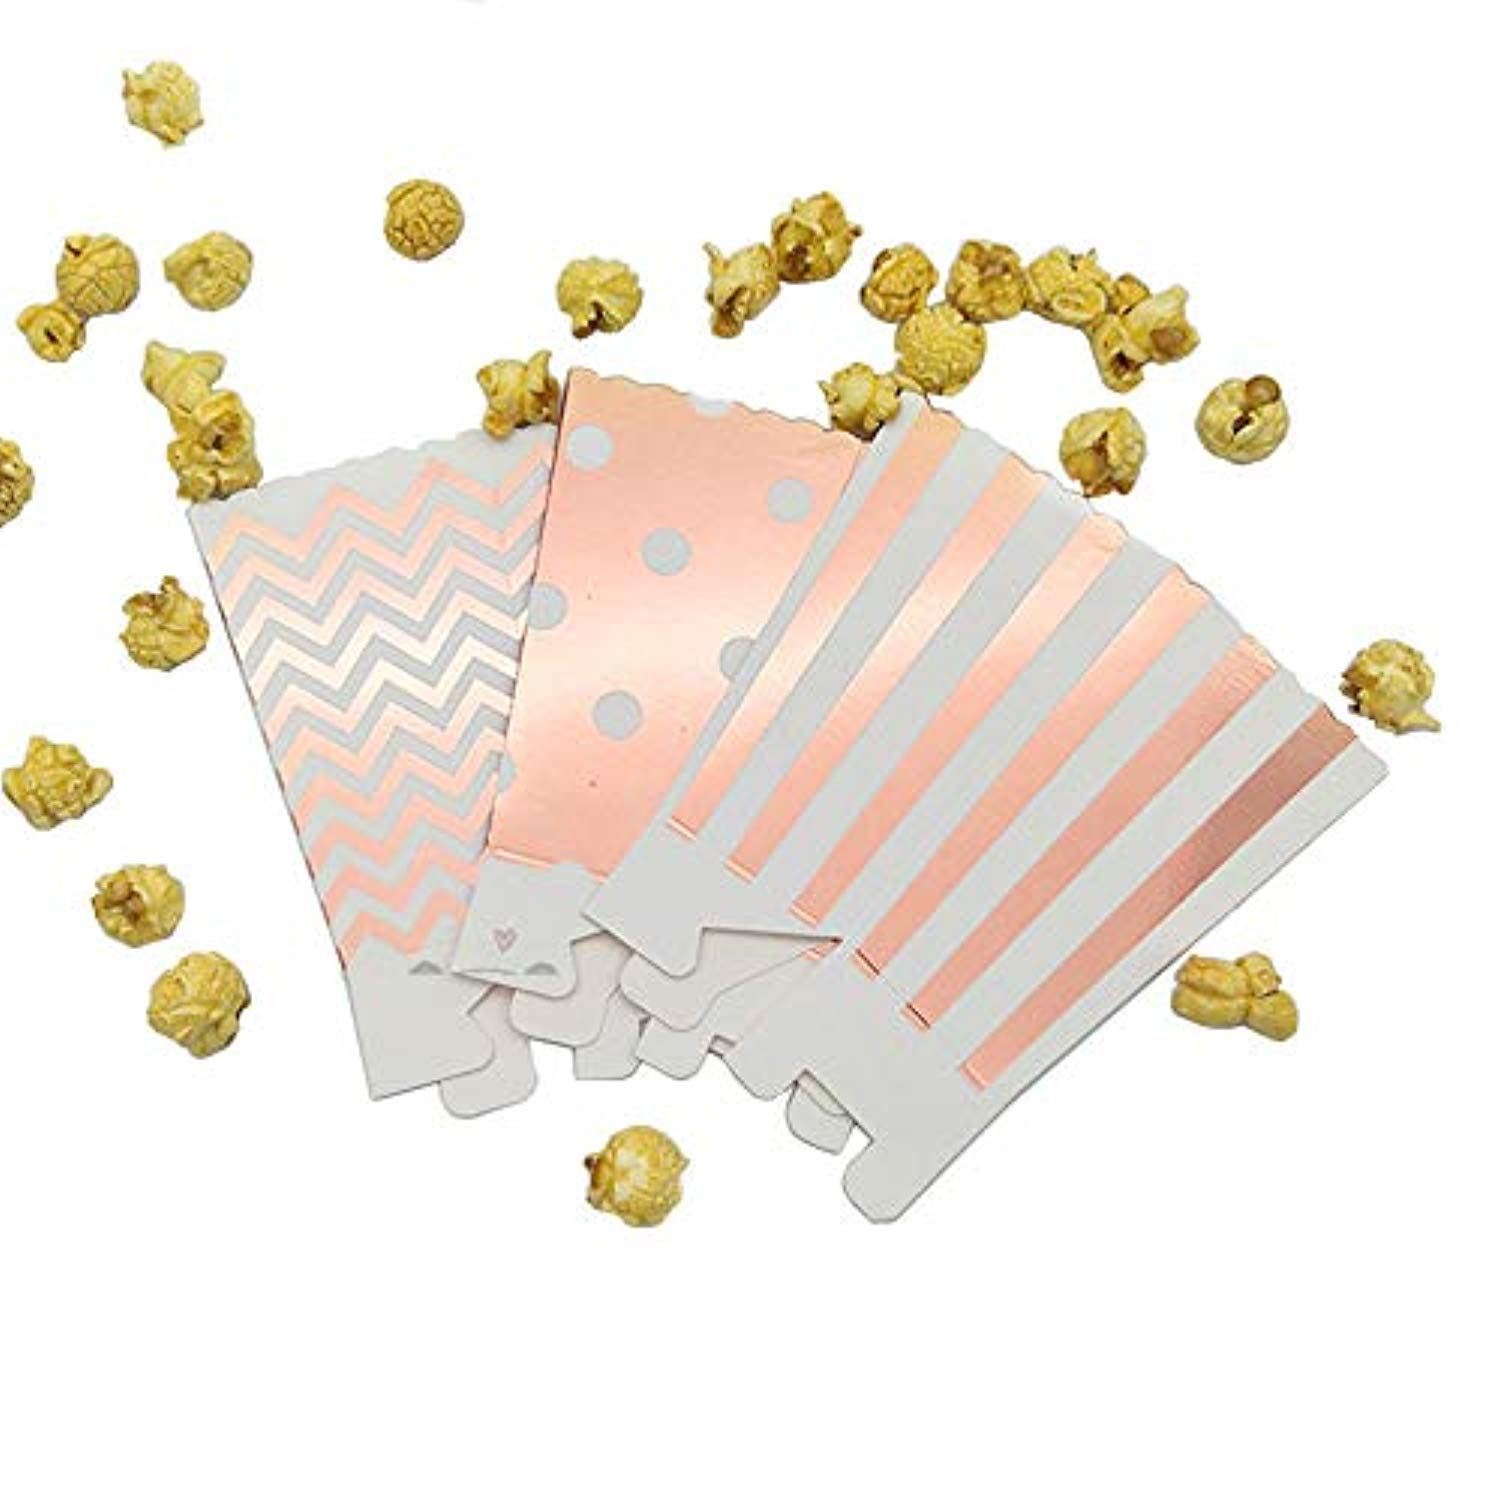 Mini Poprcorn Boxes 100 Pack Rose Gold Paper Popcorn Snack Containers Treat Box for Wedding Party Bridal Shower Birthday Movies by BALANSOHO (Image #6)